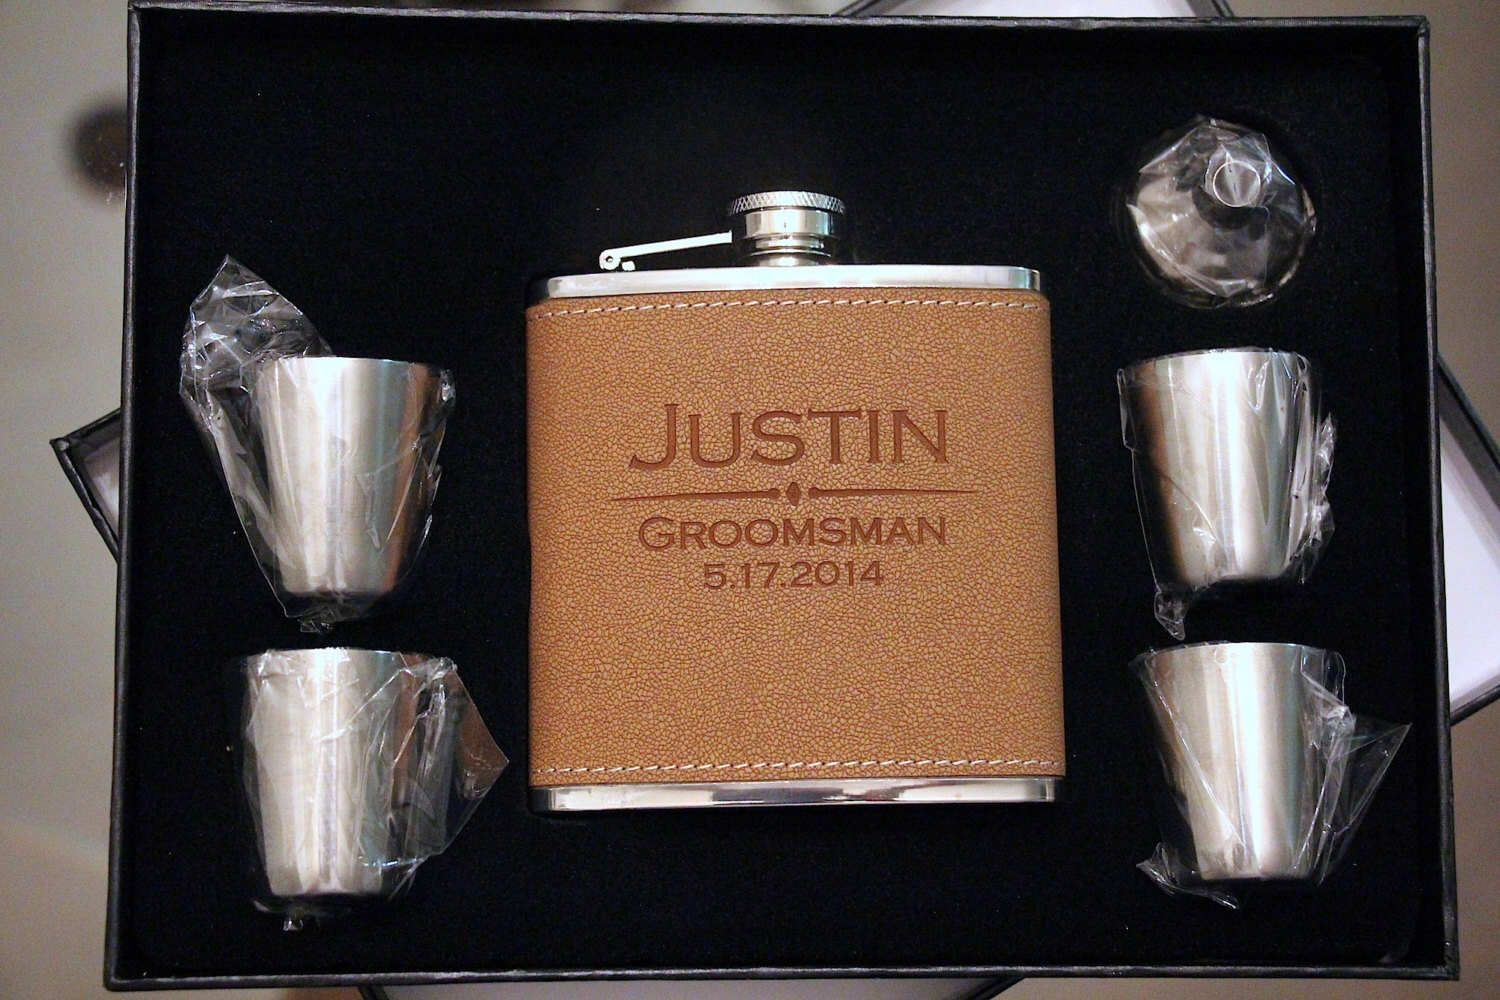 groomsmen gift flask personalized leather engraved custom gifts monogram groomsman hip flasks company presents customized weddbook